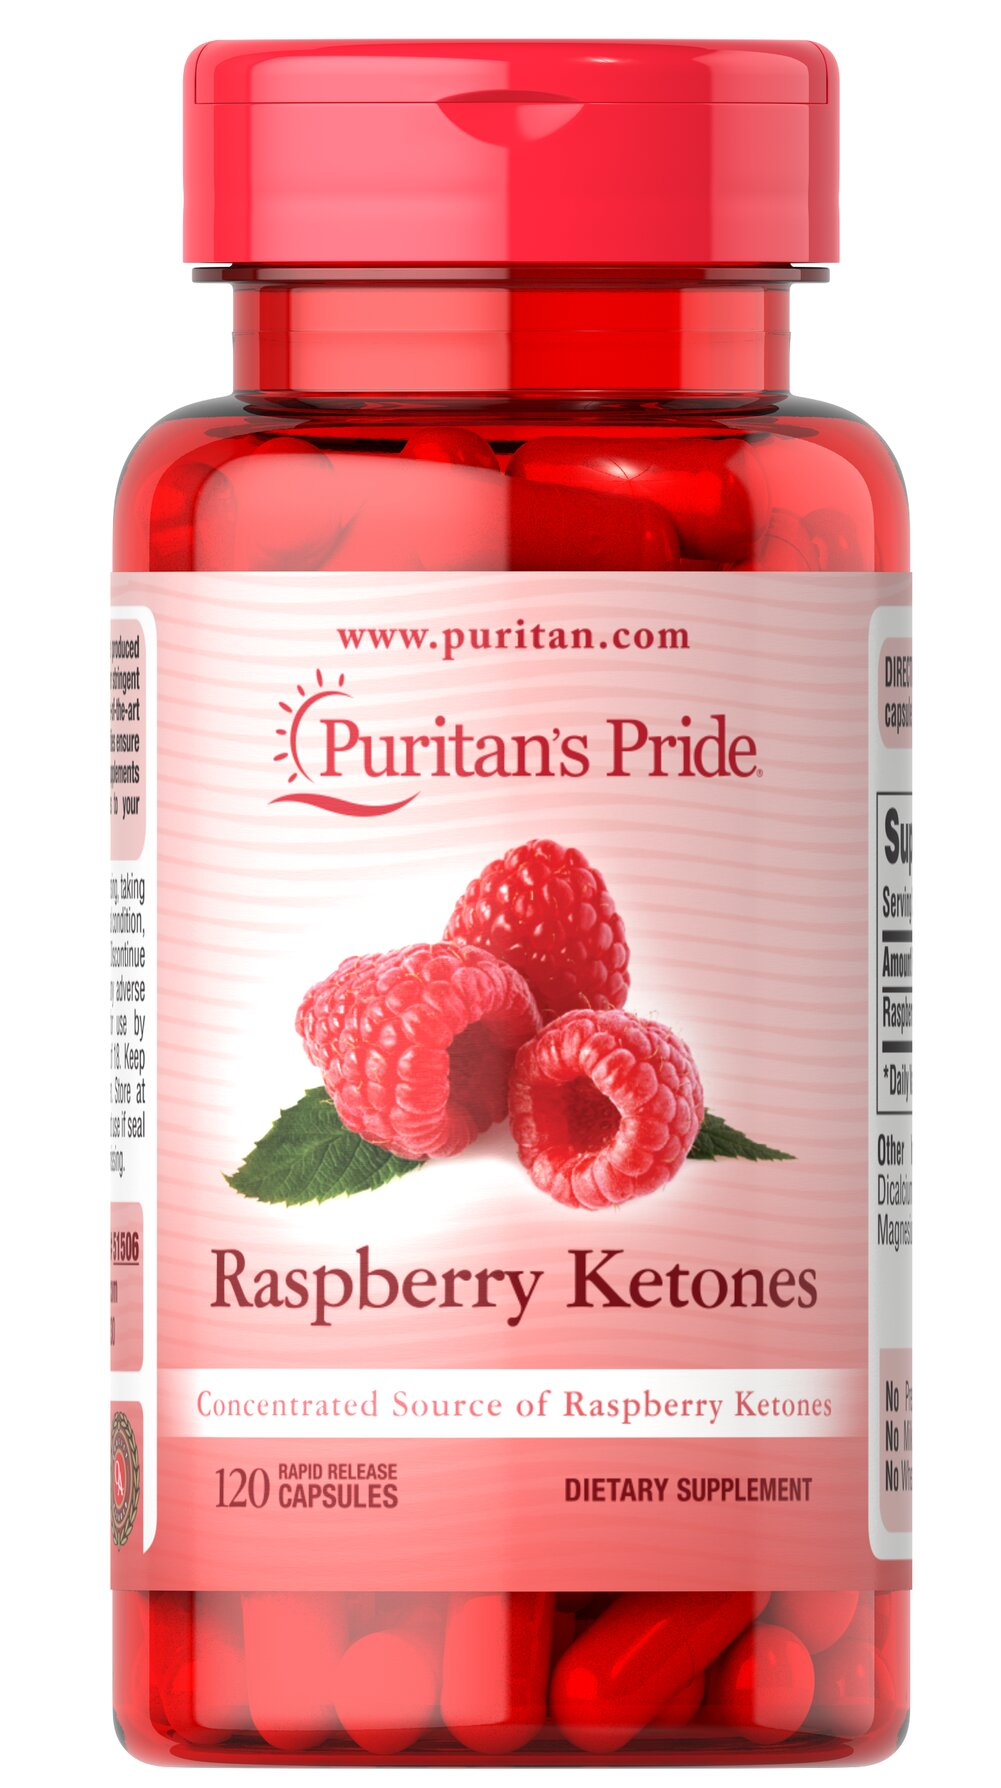 Raspberry Ketones 100 mg <p><span></span>Concentrated source of Raspberry Ketones.</p><p><span></span>100mg in one serving.</p><p><span></span>Rapid release capsules.</p><p>Our Raspberry Ketones are highly concentrated. Each serving of this dietary supplement contains 100mg of raspberry ketones.</p> 120 Rapid Release Capsules 100 mg $10.99